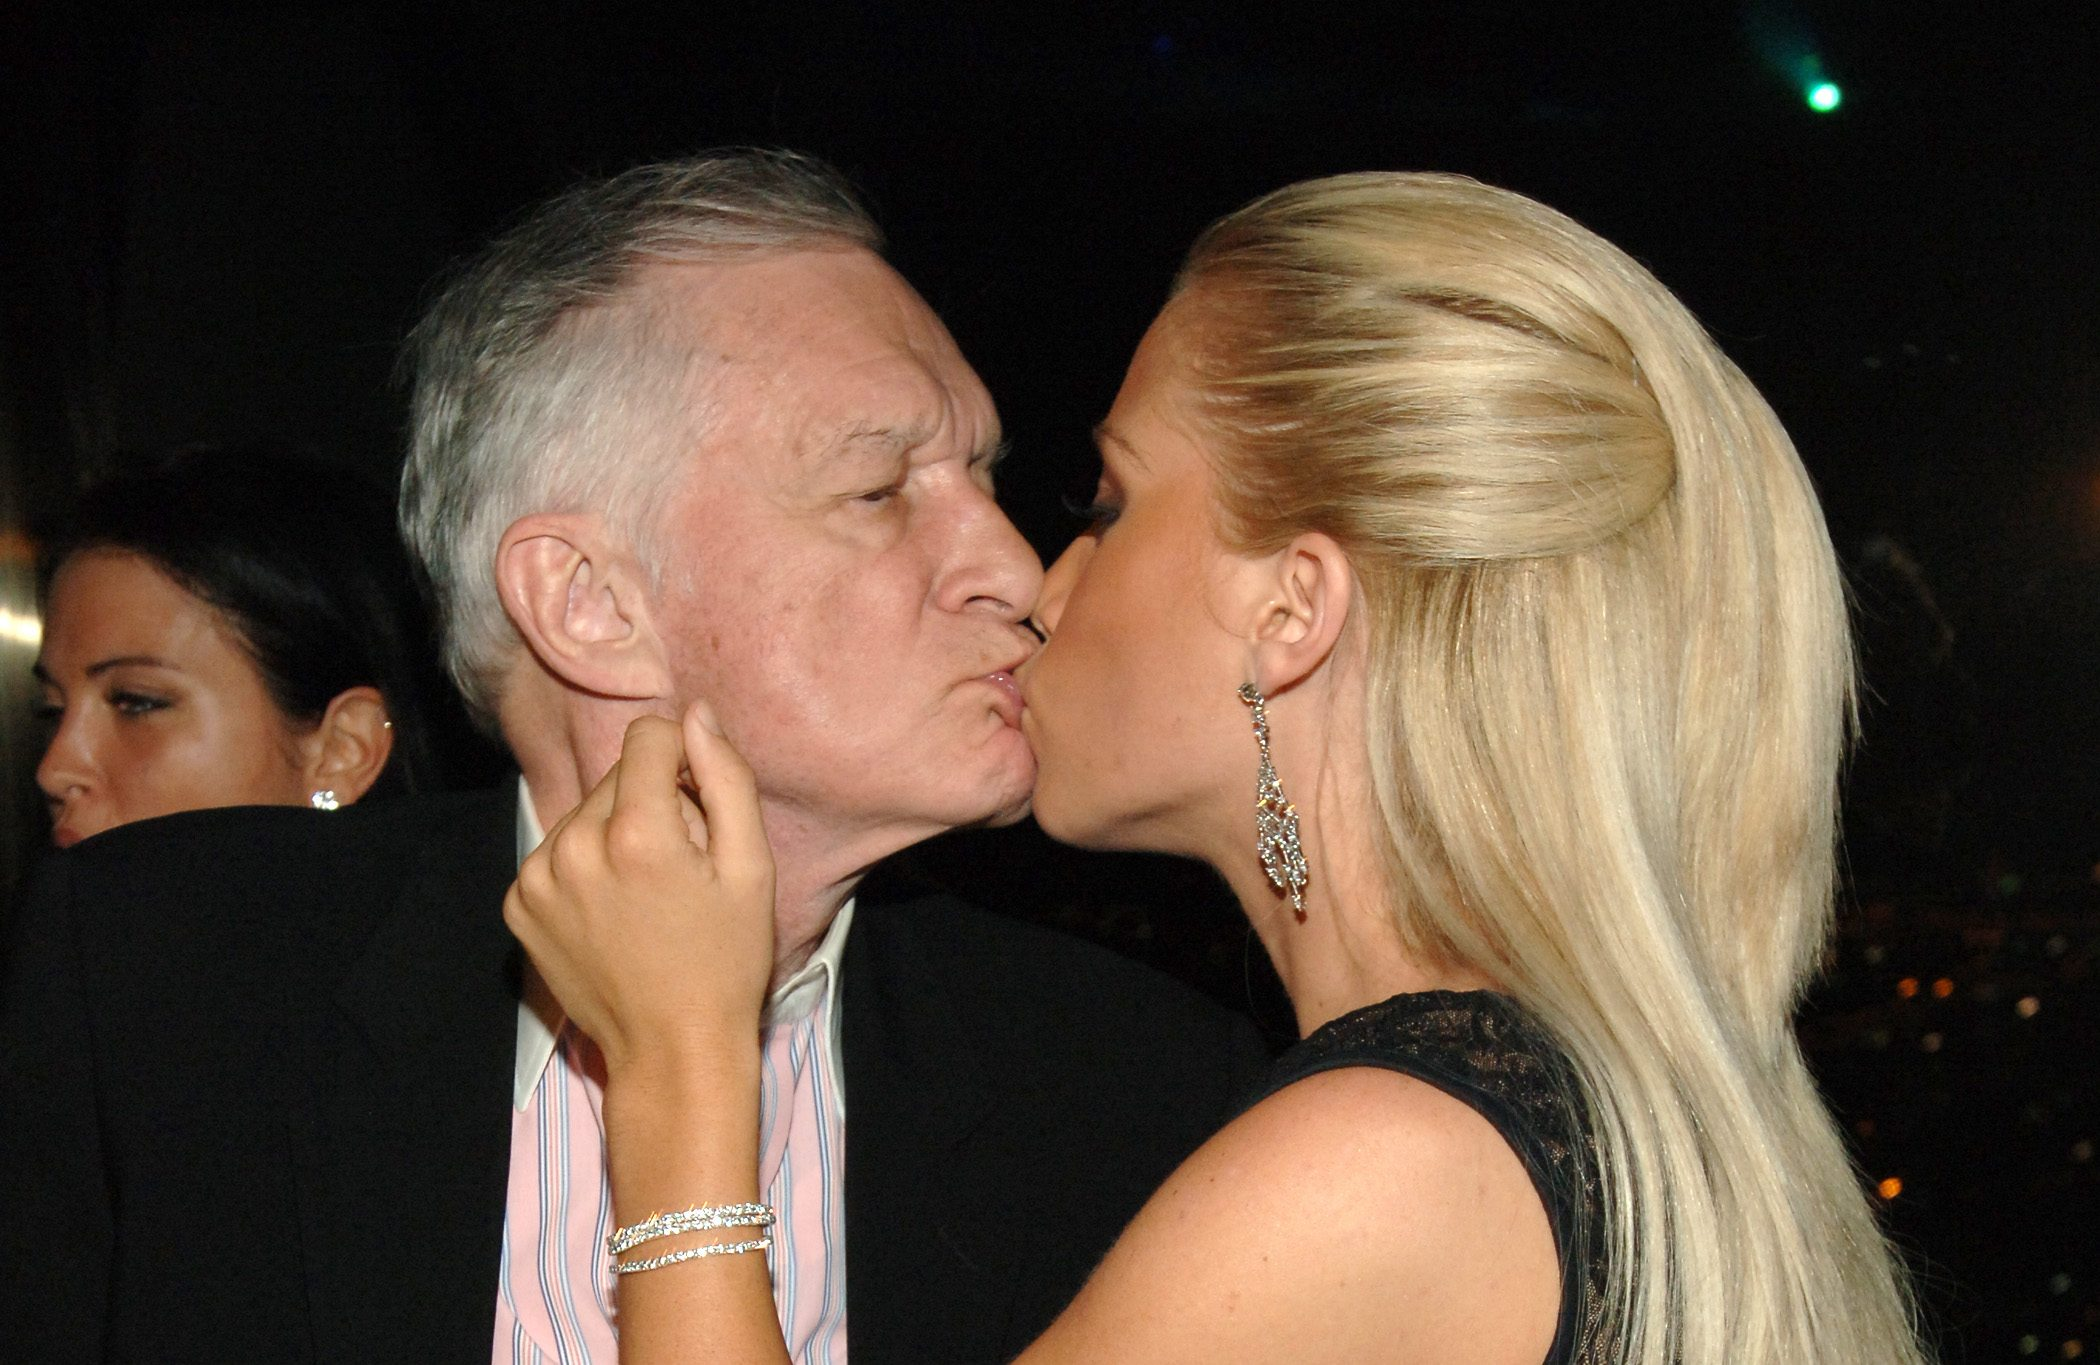 Hugh Hefner's girlfriends pay tribute to man who 'changed their lives'